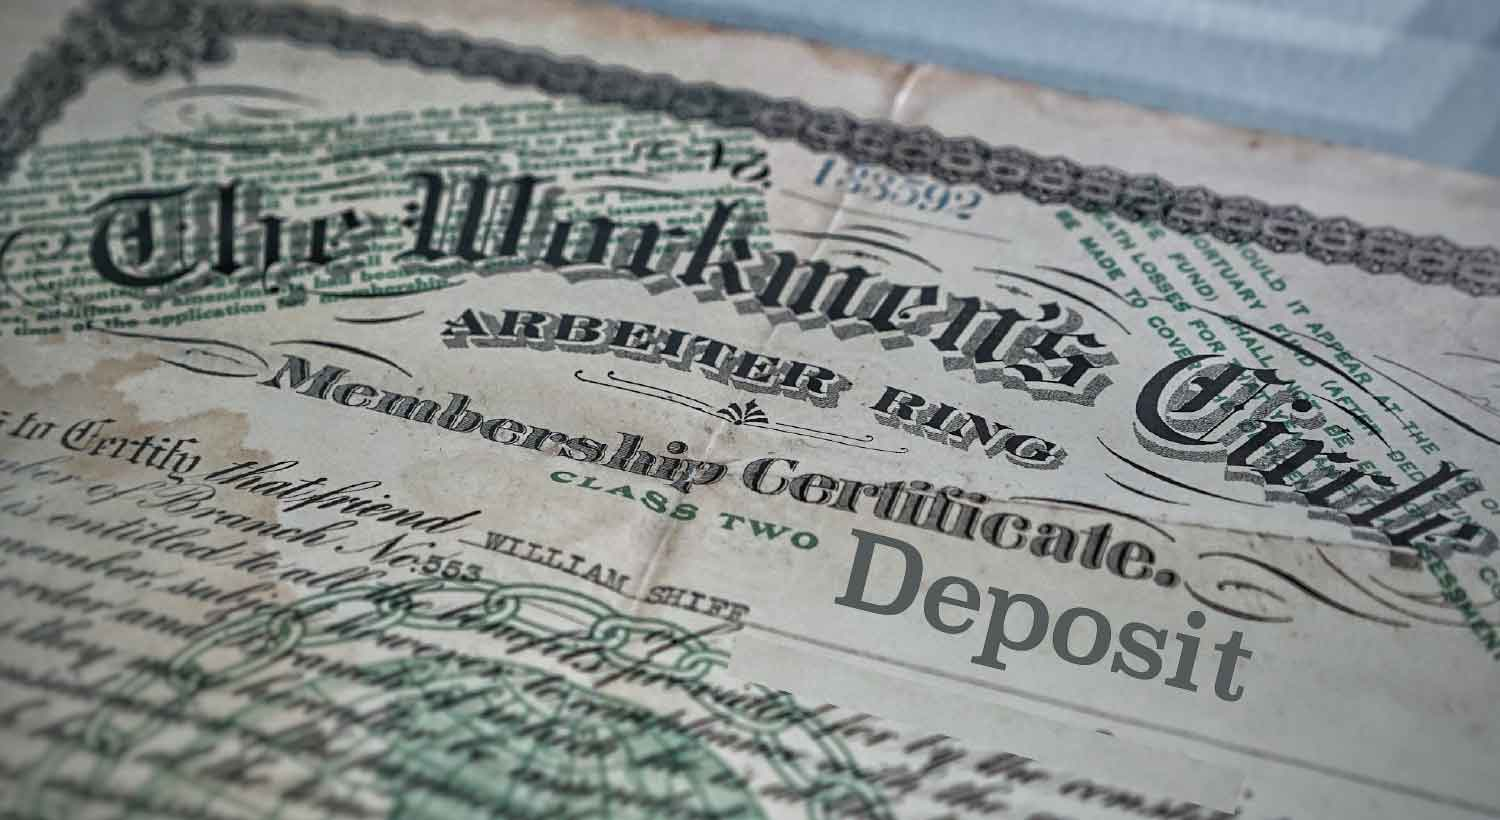 cd certificate of deposit